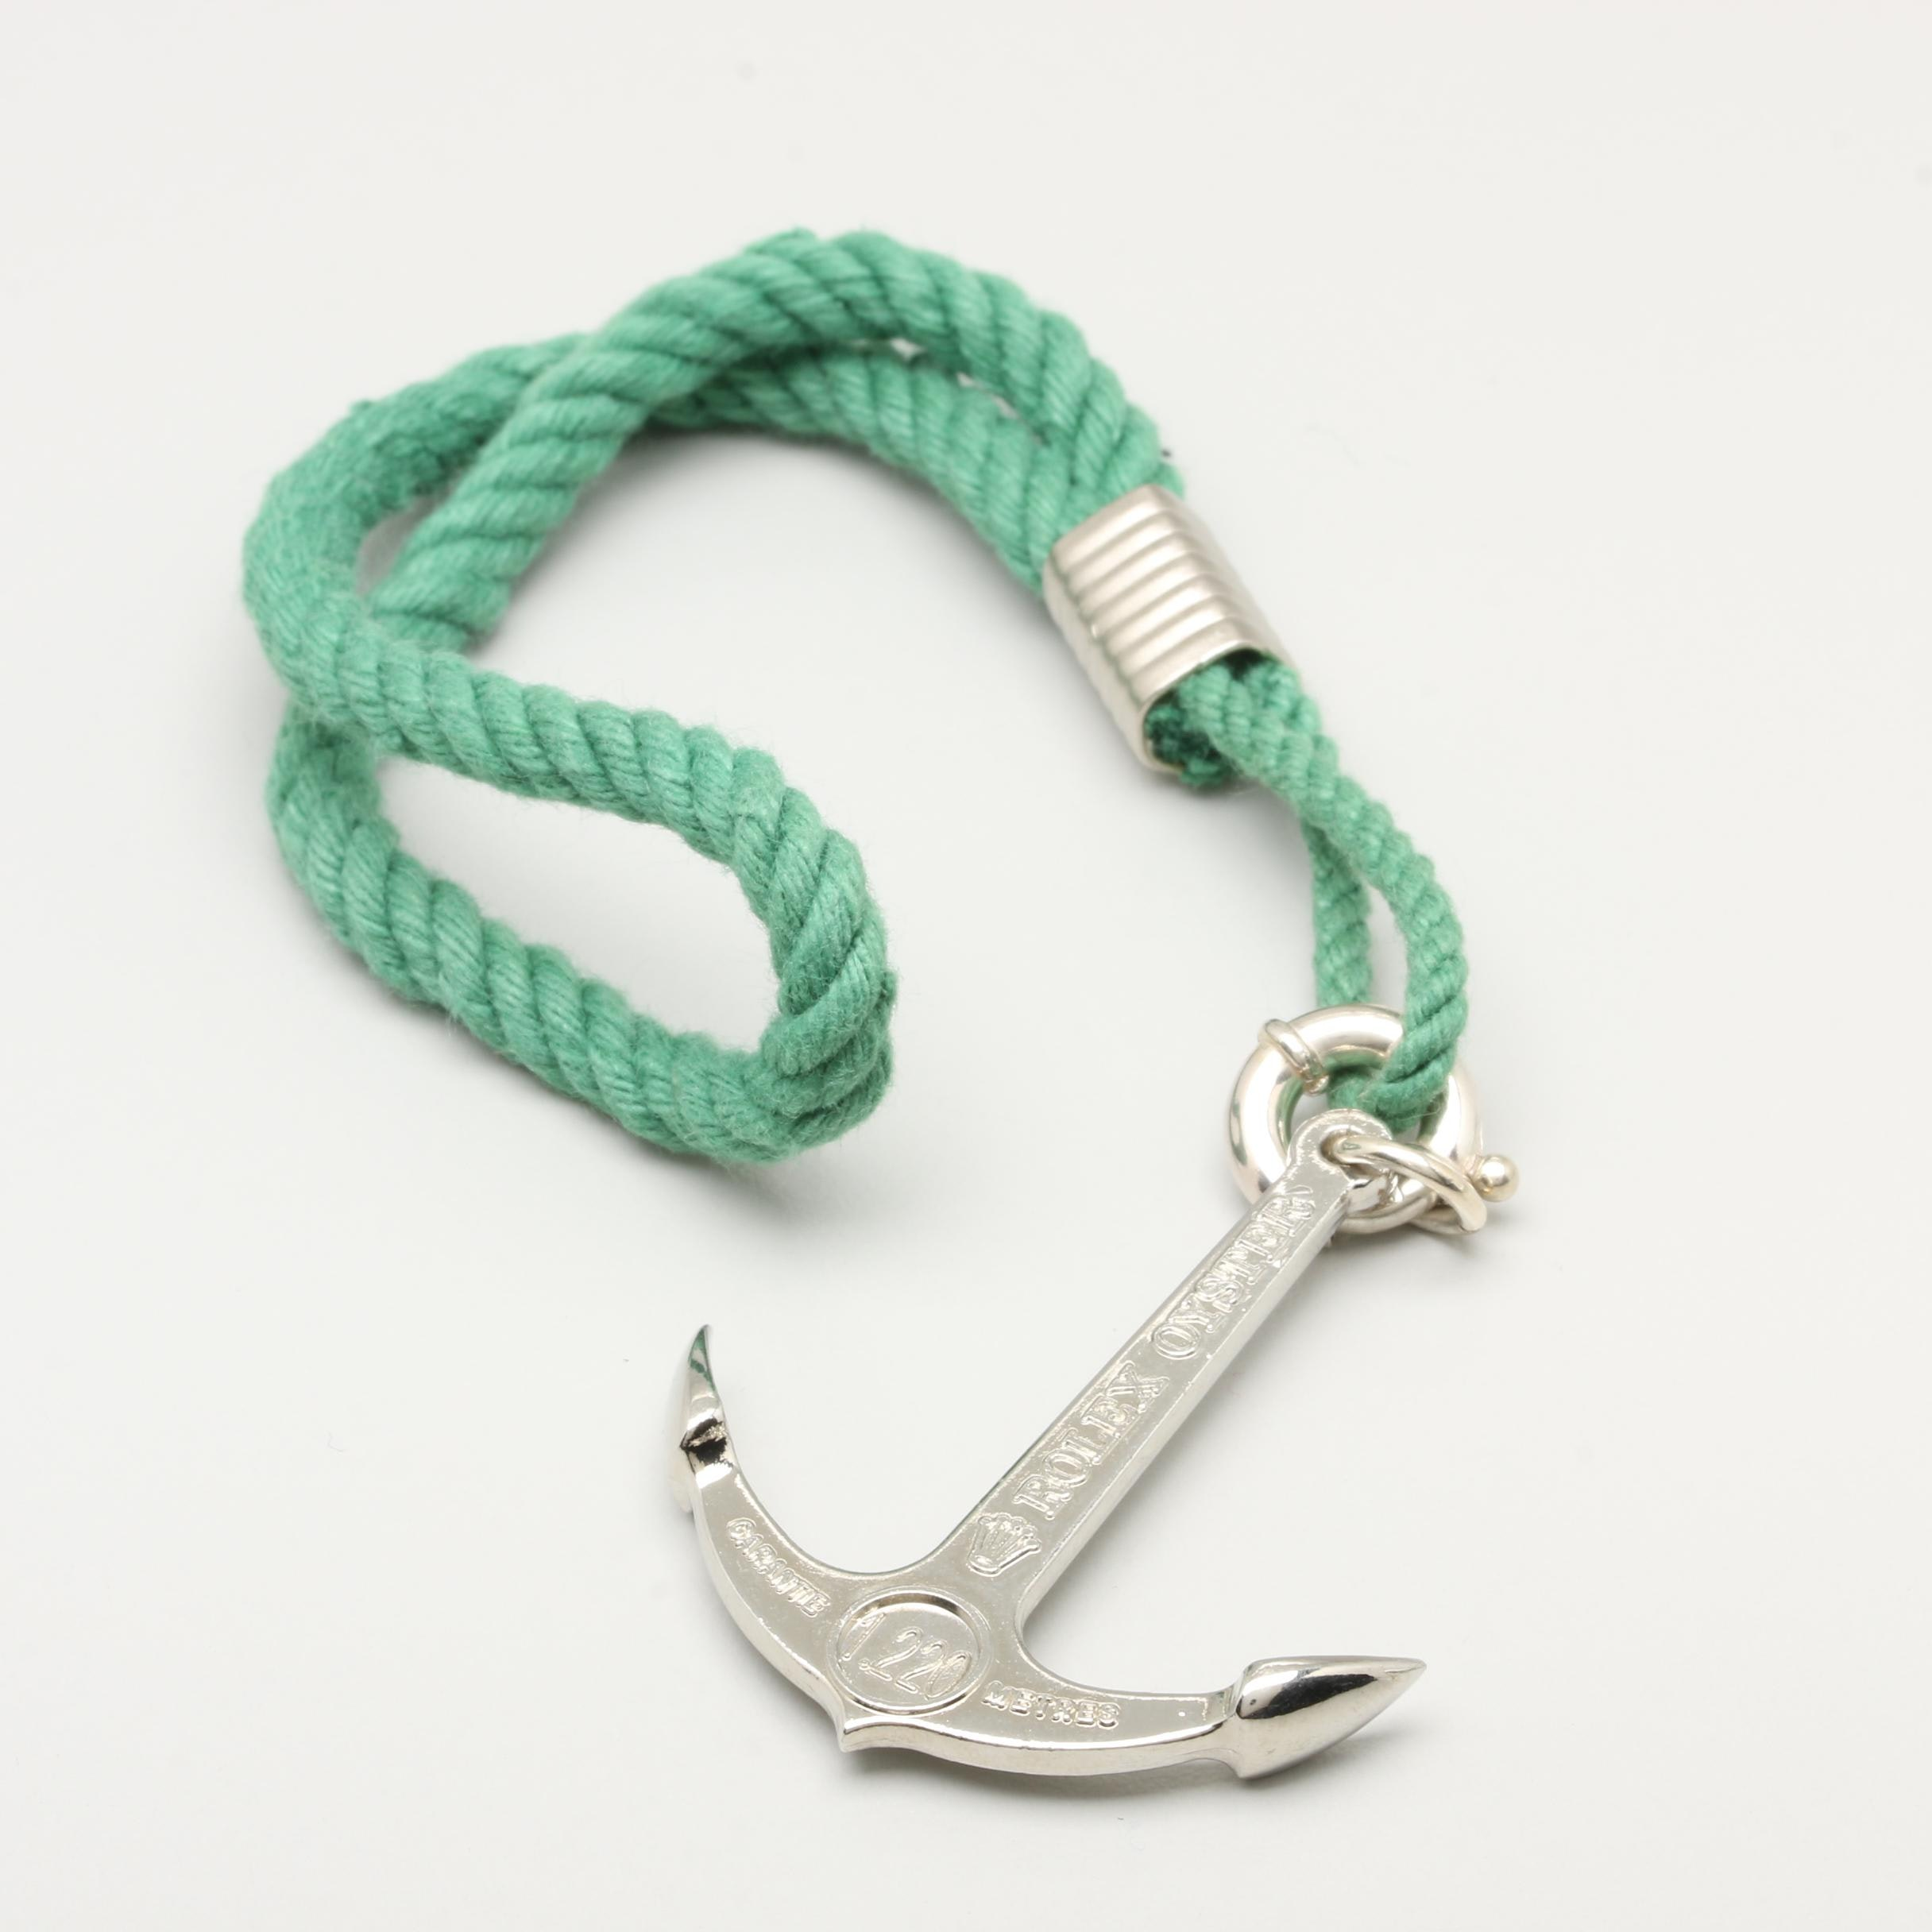 Rolex Oyster Sterling Silver Anchor Charm Accessory on Green Rope